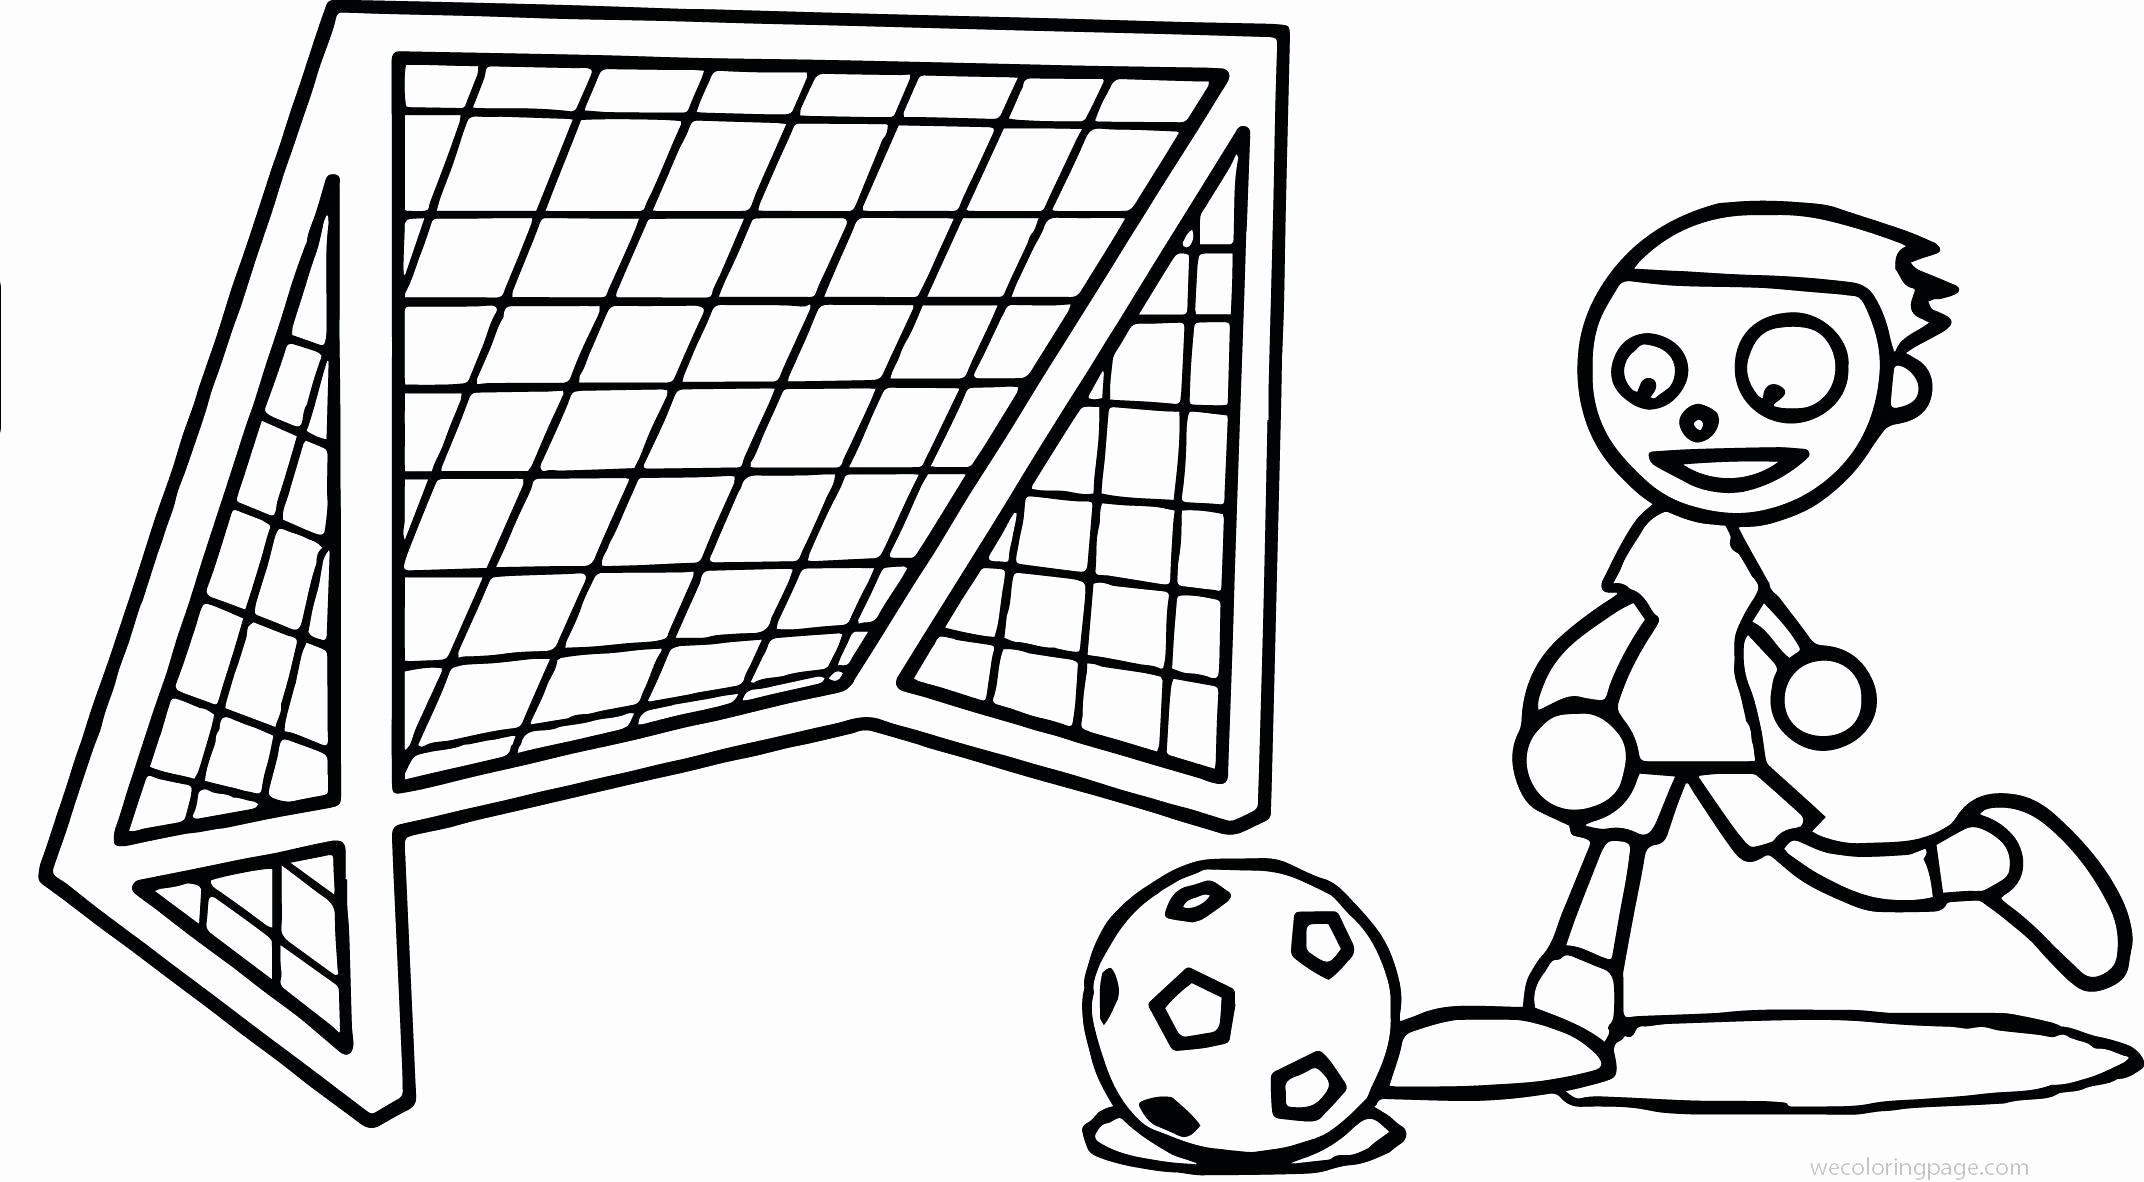 Atlanta Falcons Coloring Pages